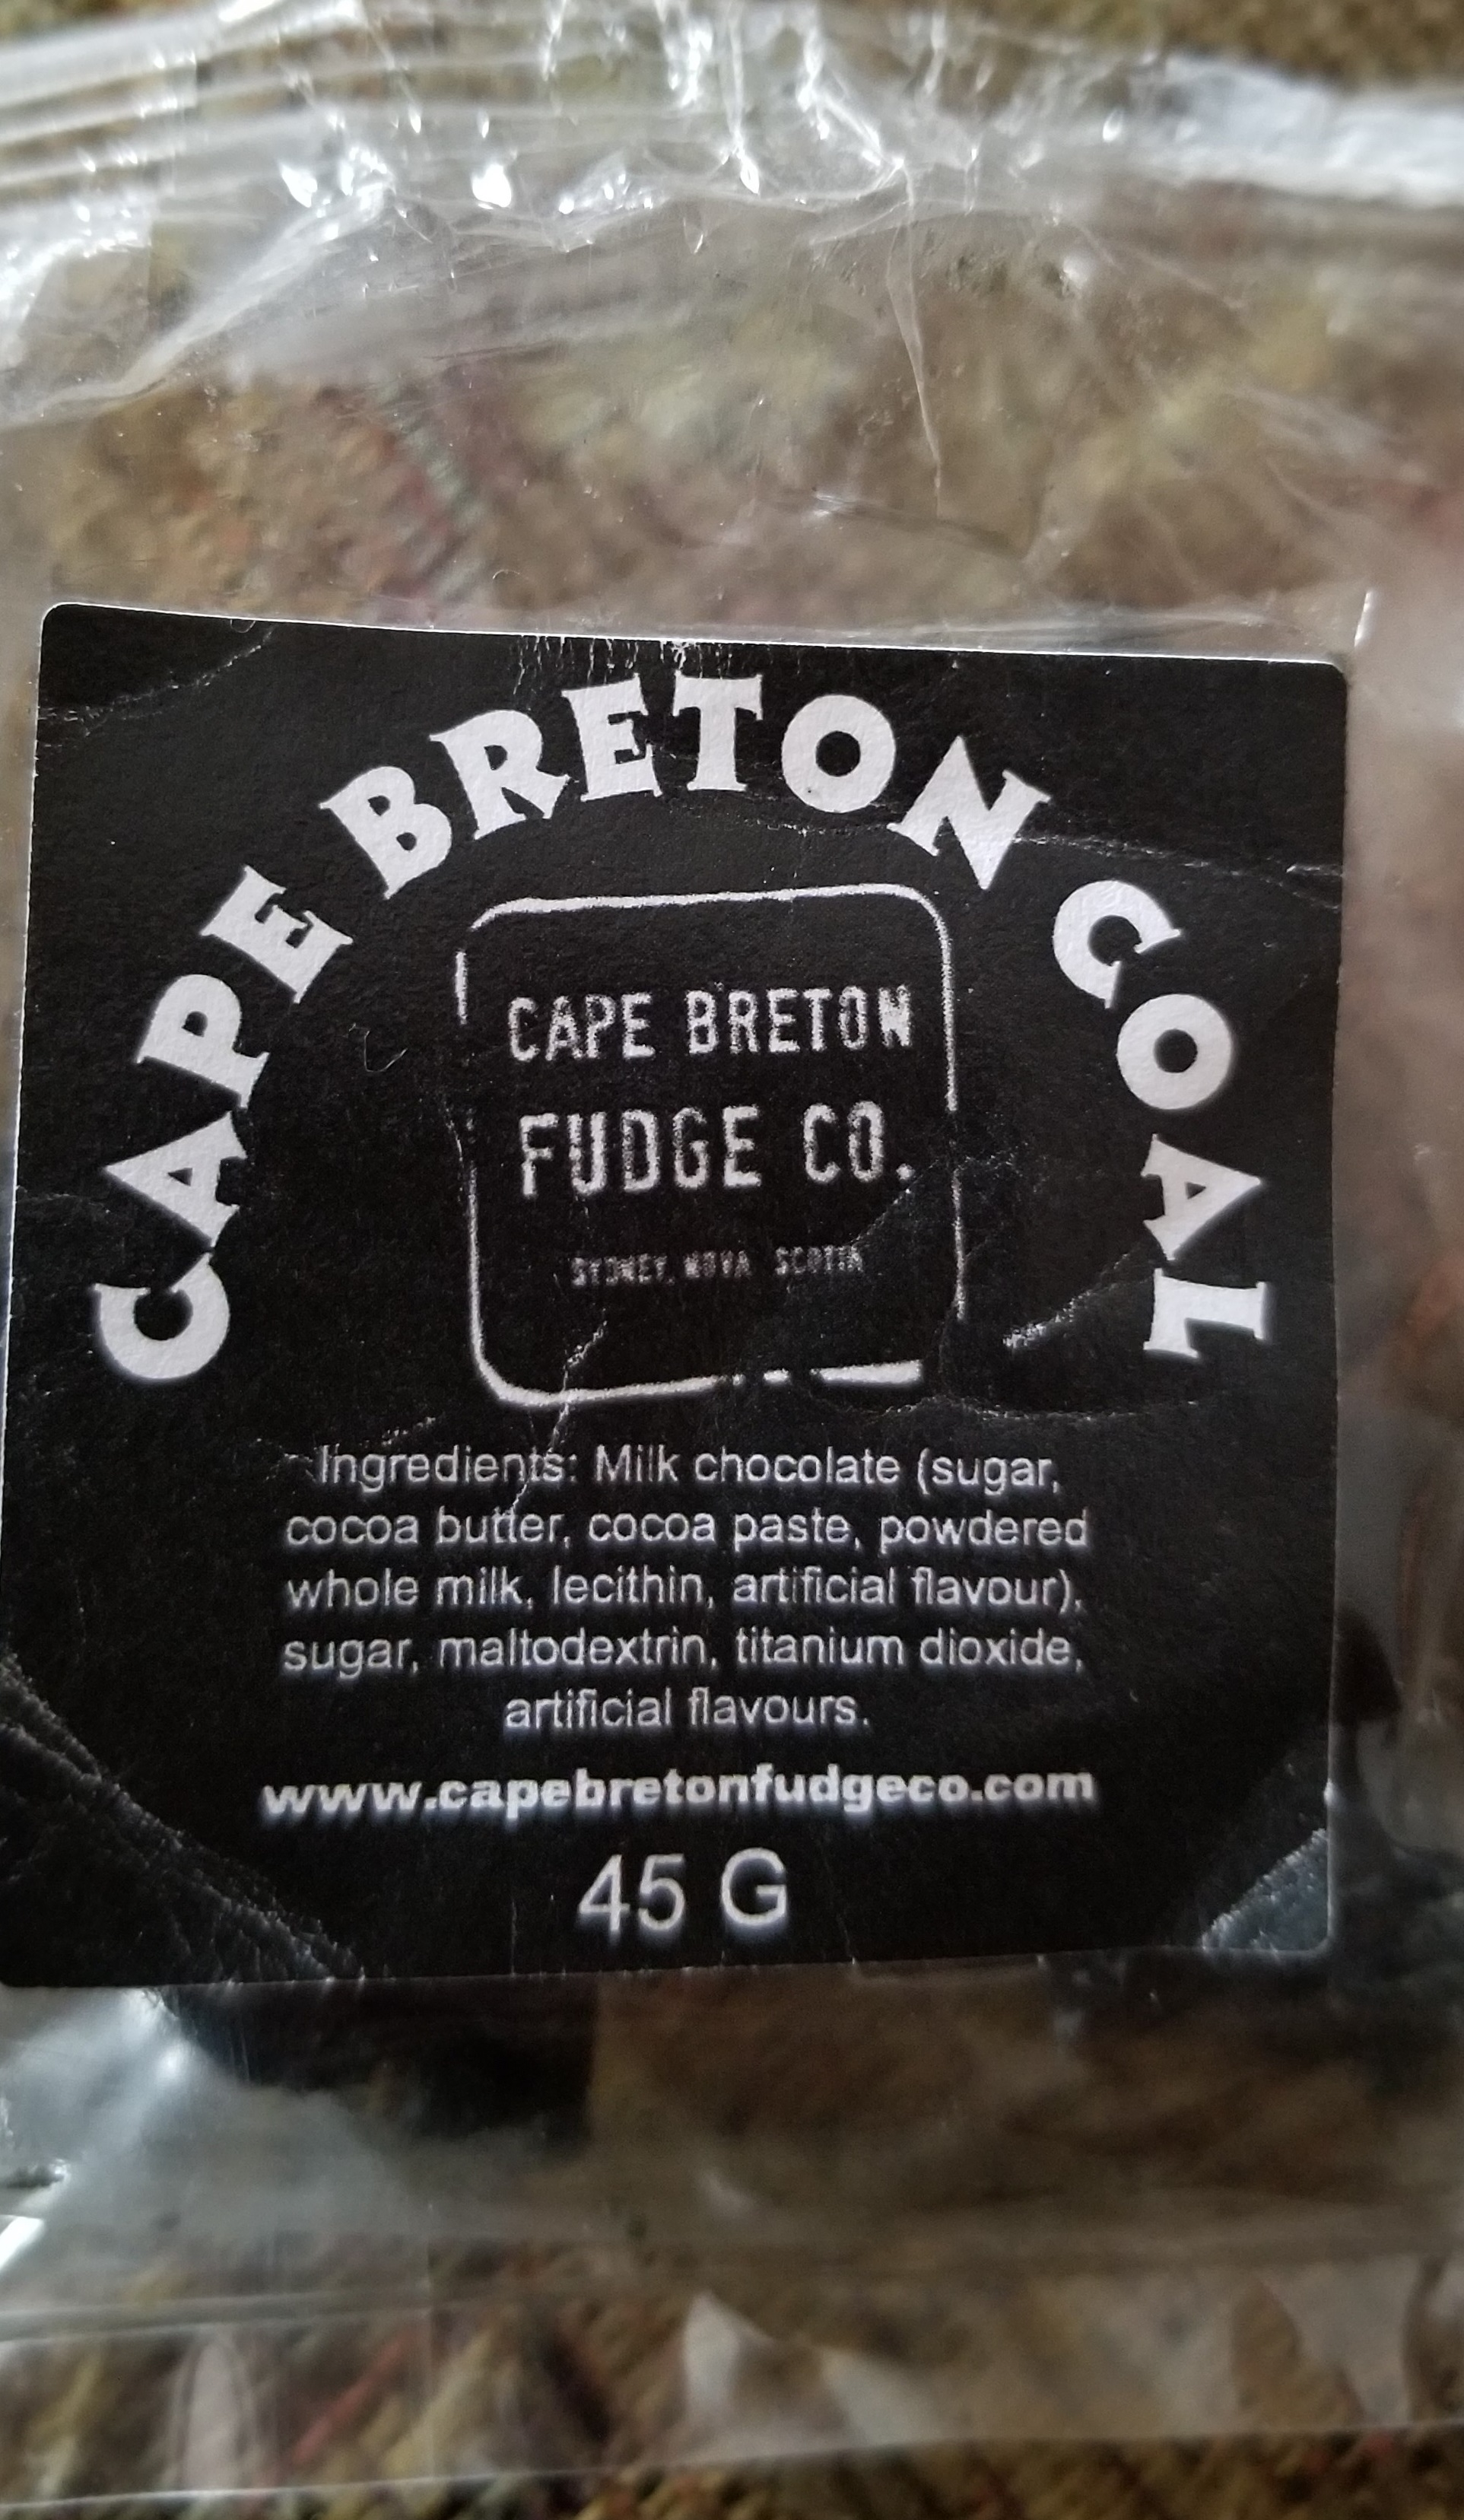 Cape Breton Fudge Co. - « Cape Breton Coal »